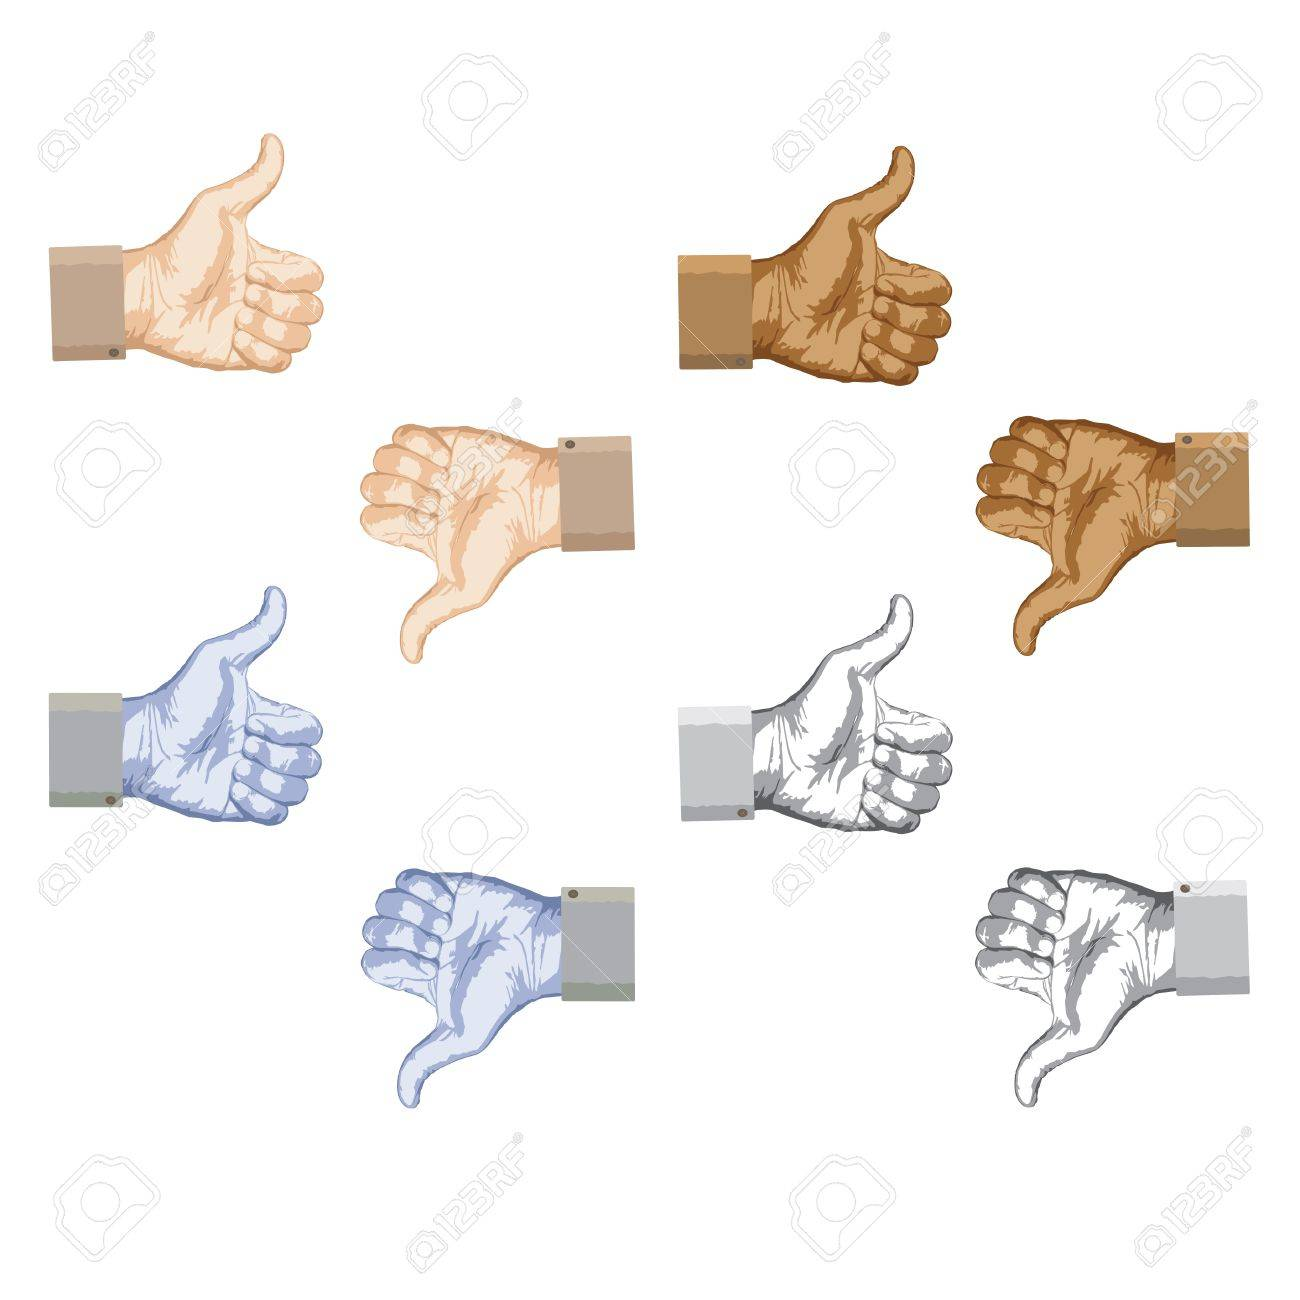 Illustration of thumbs up and thumbs down hand gestures set. Stock Vector - 12744716